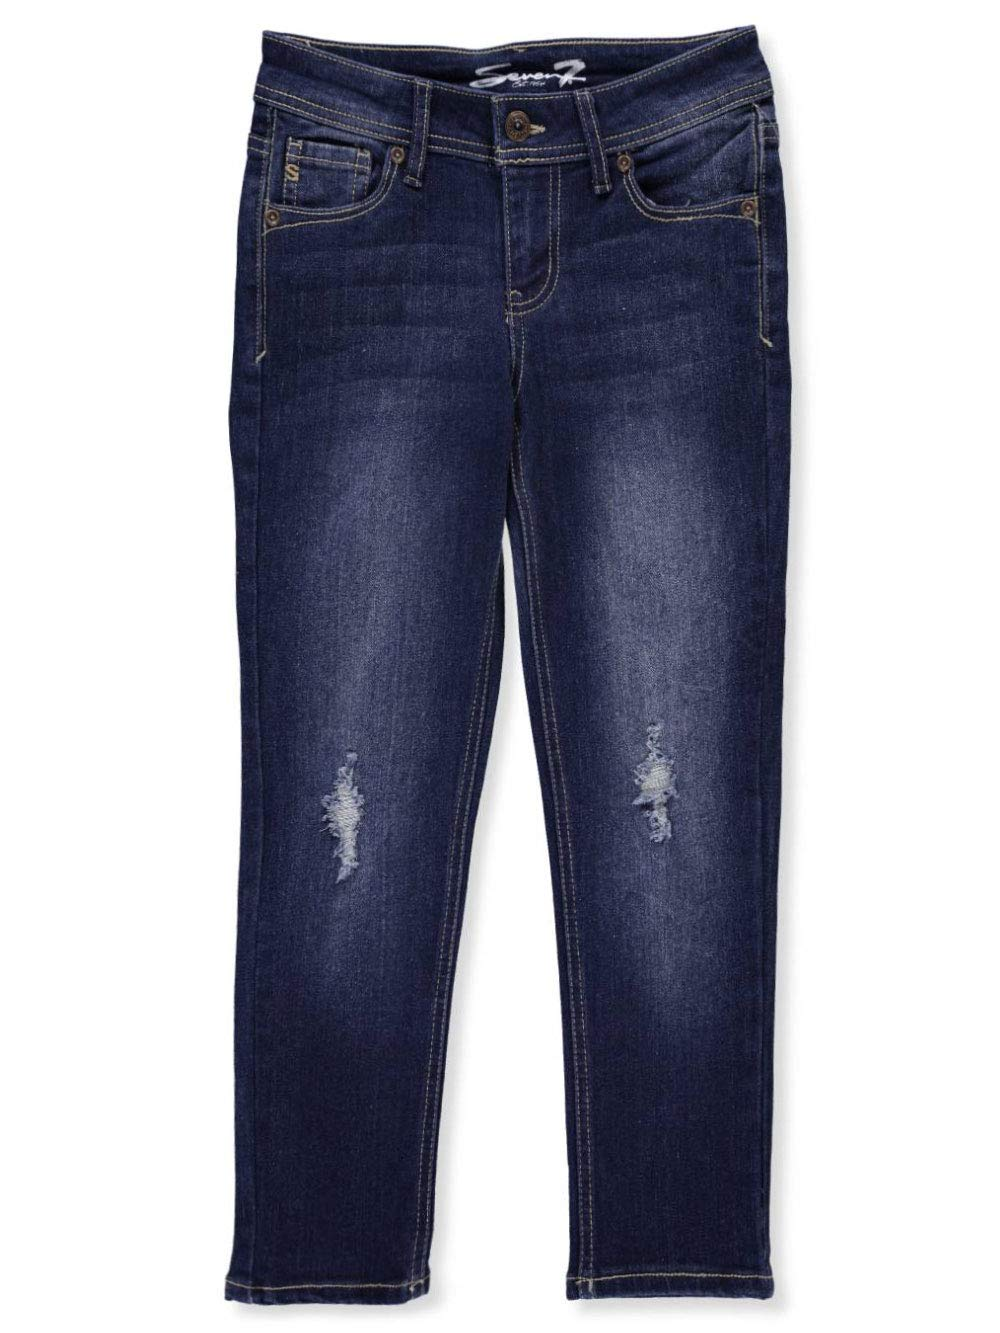 Seven7 Big Girls' Jeans - Denim Blue, 7